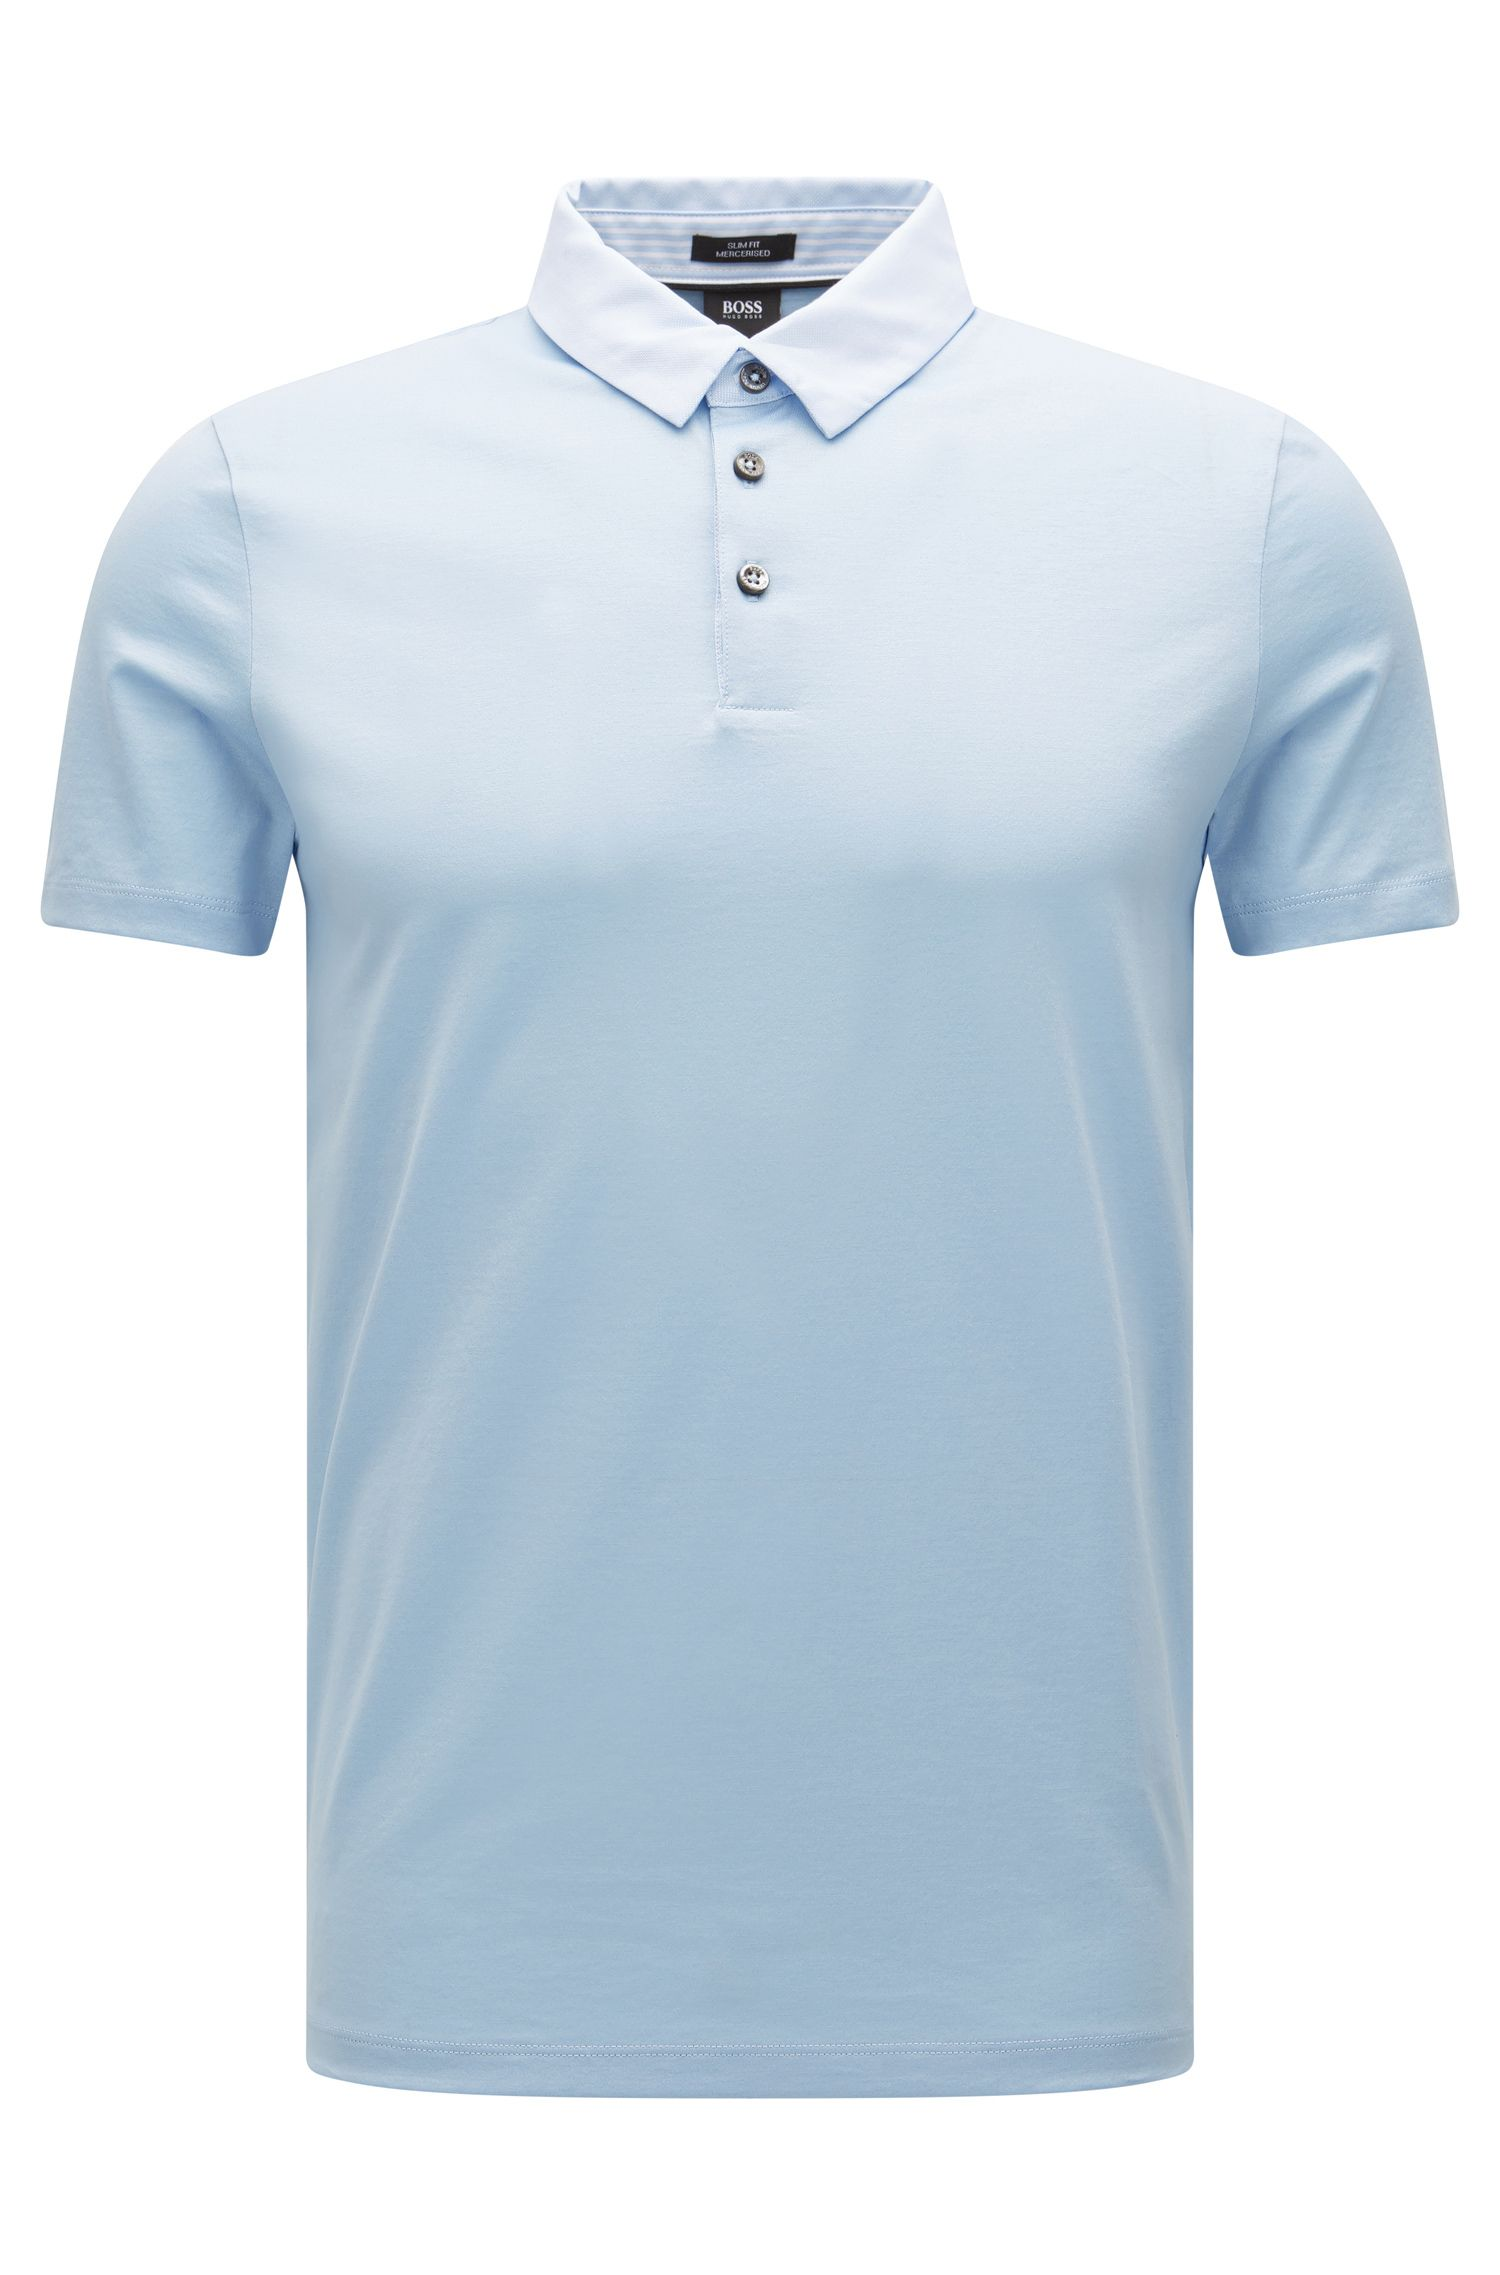 Slim-fit mercerised cotton polo shirt with woven details